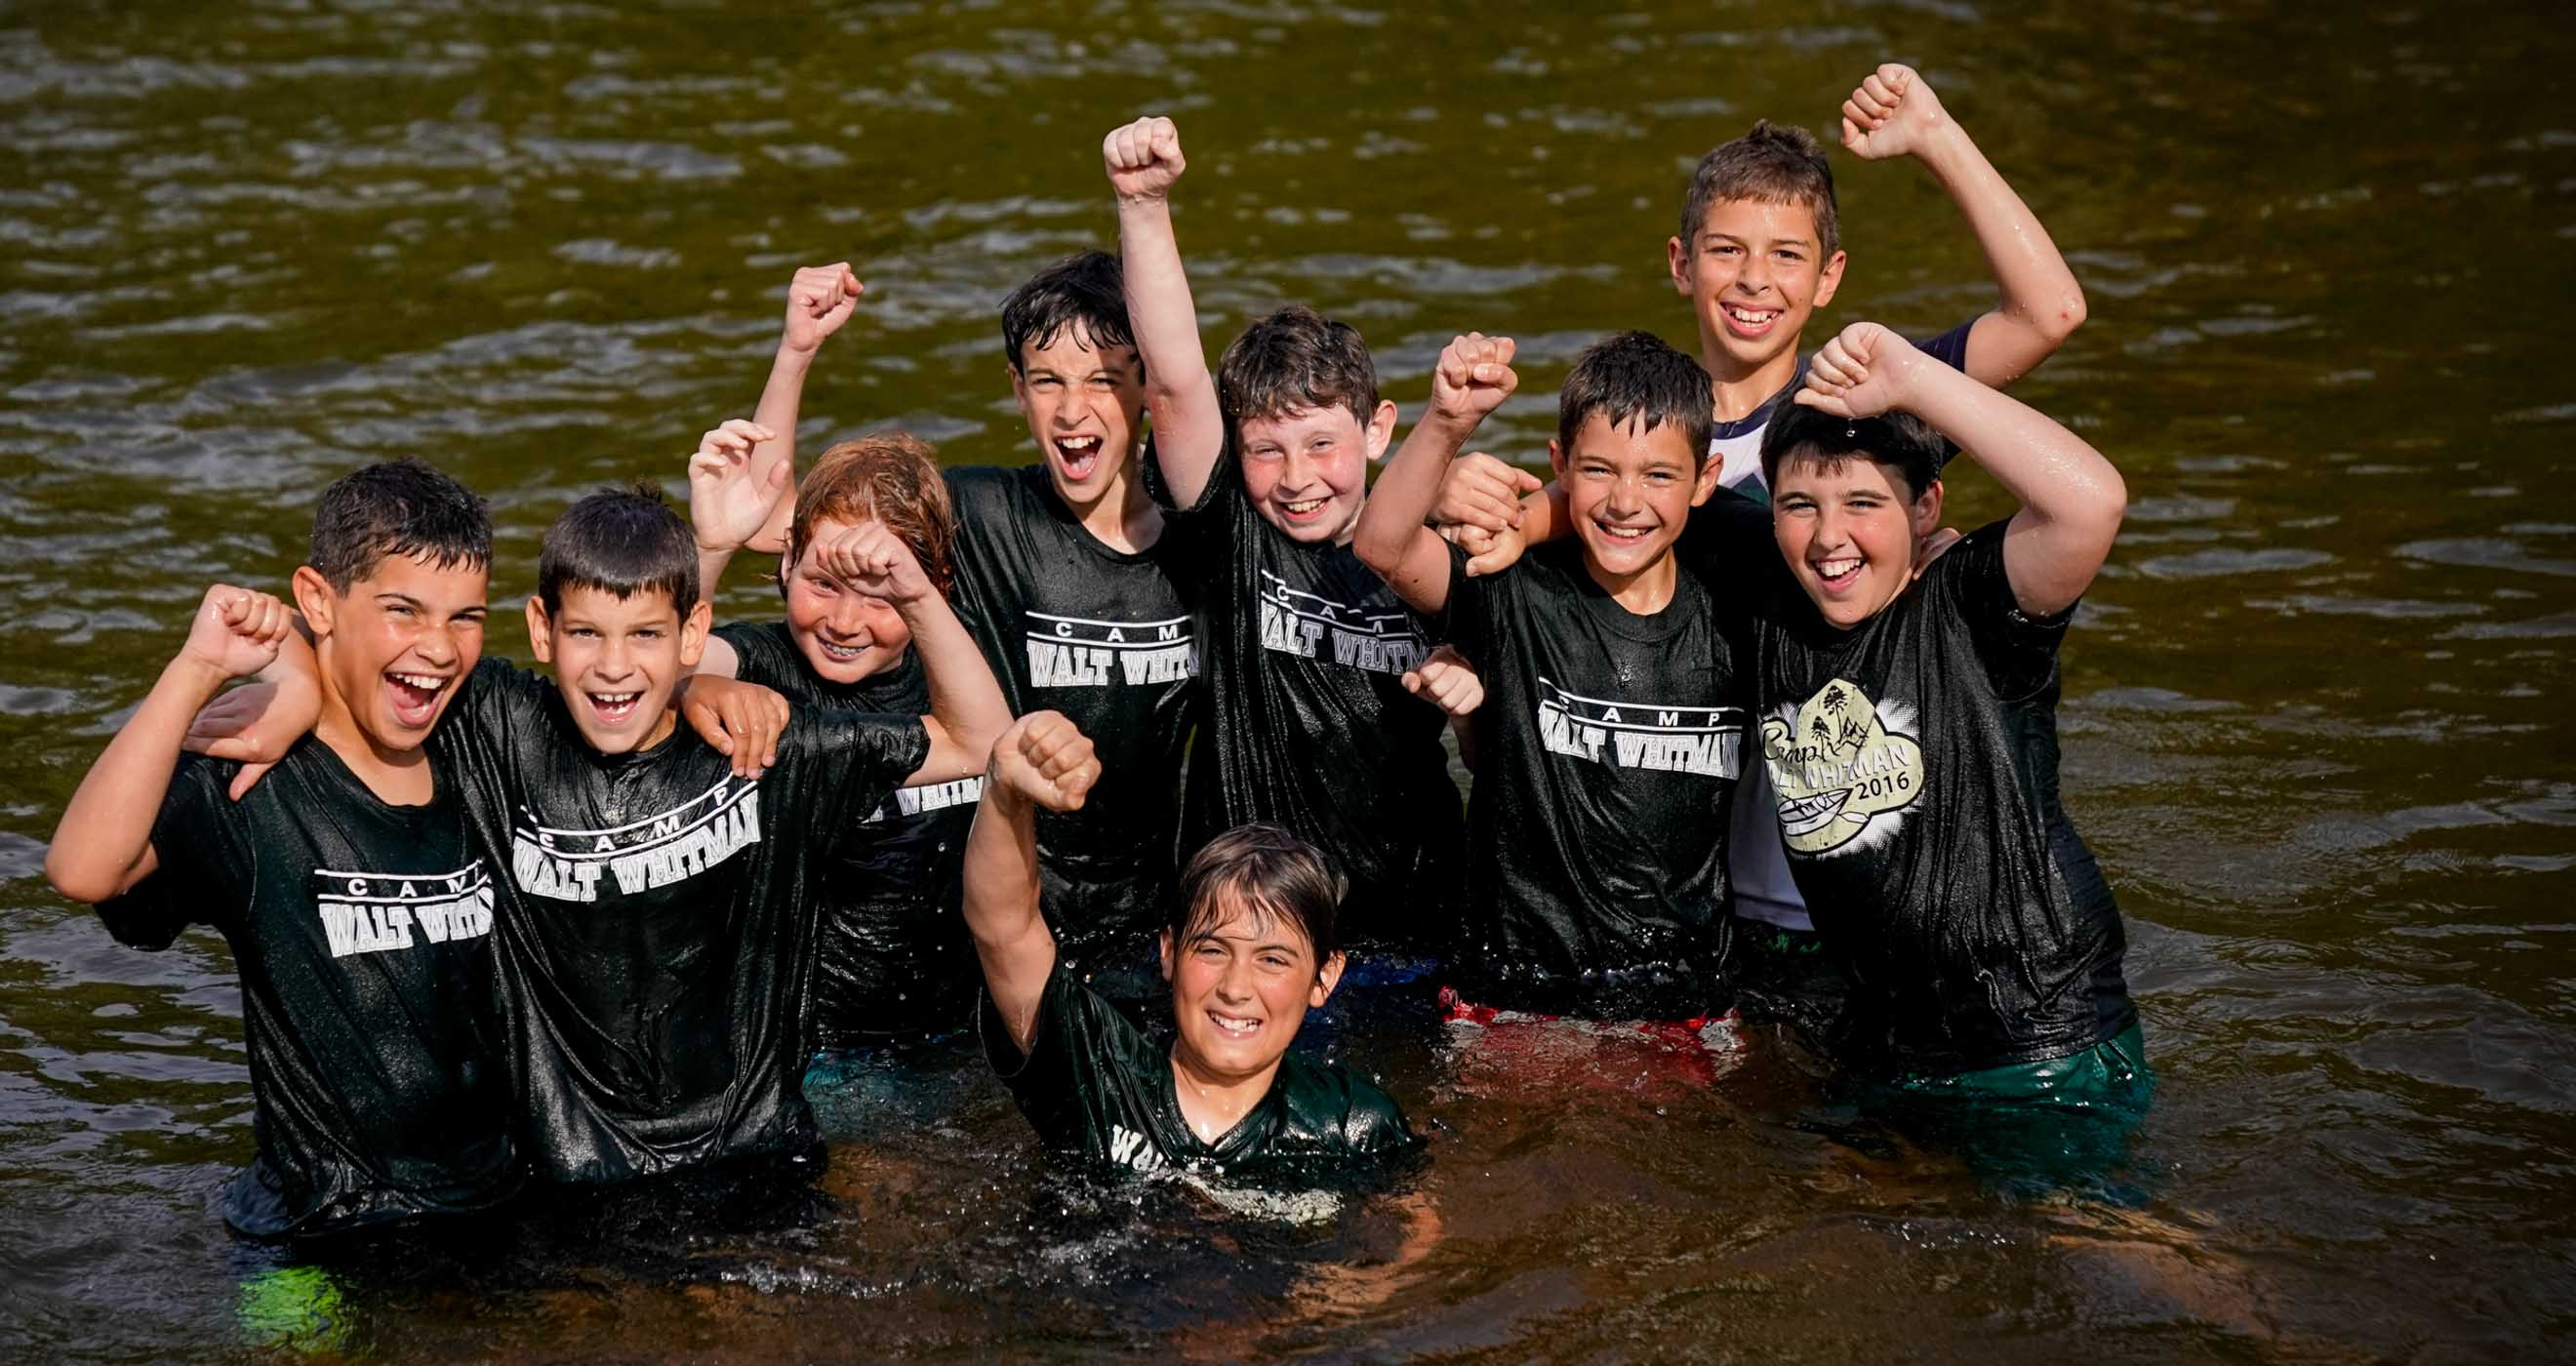 young boys cheering while in water